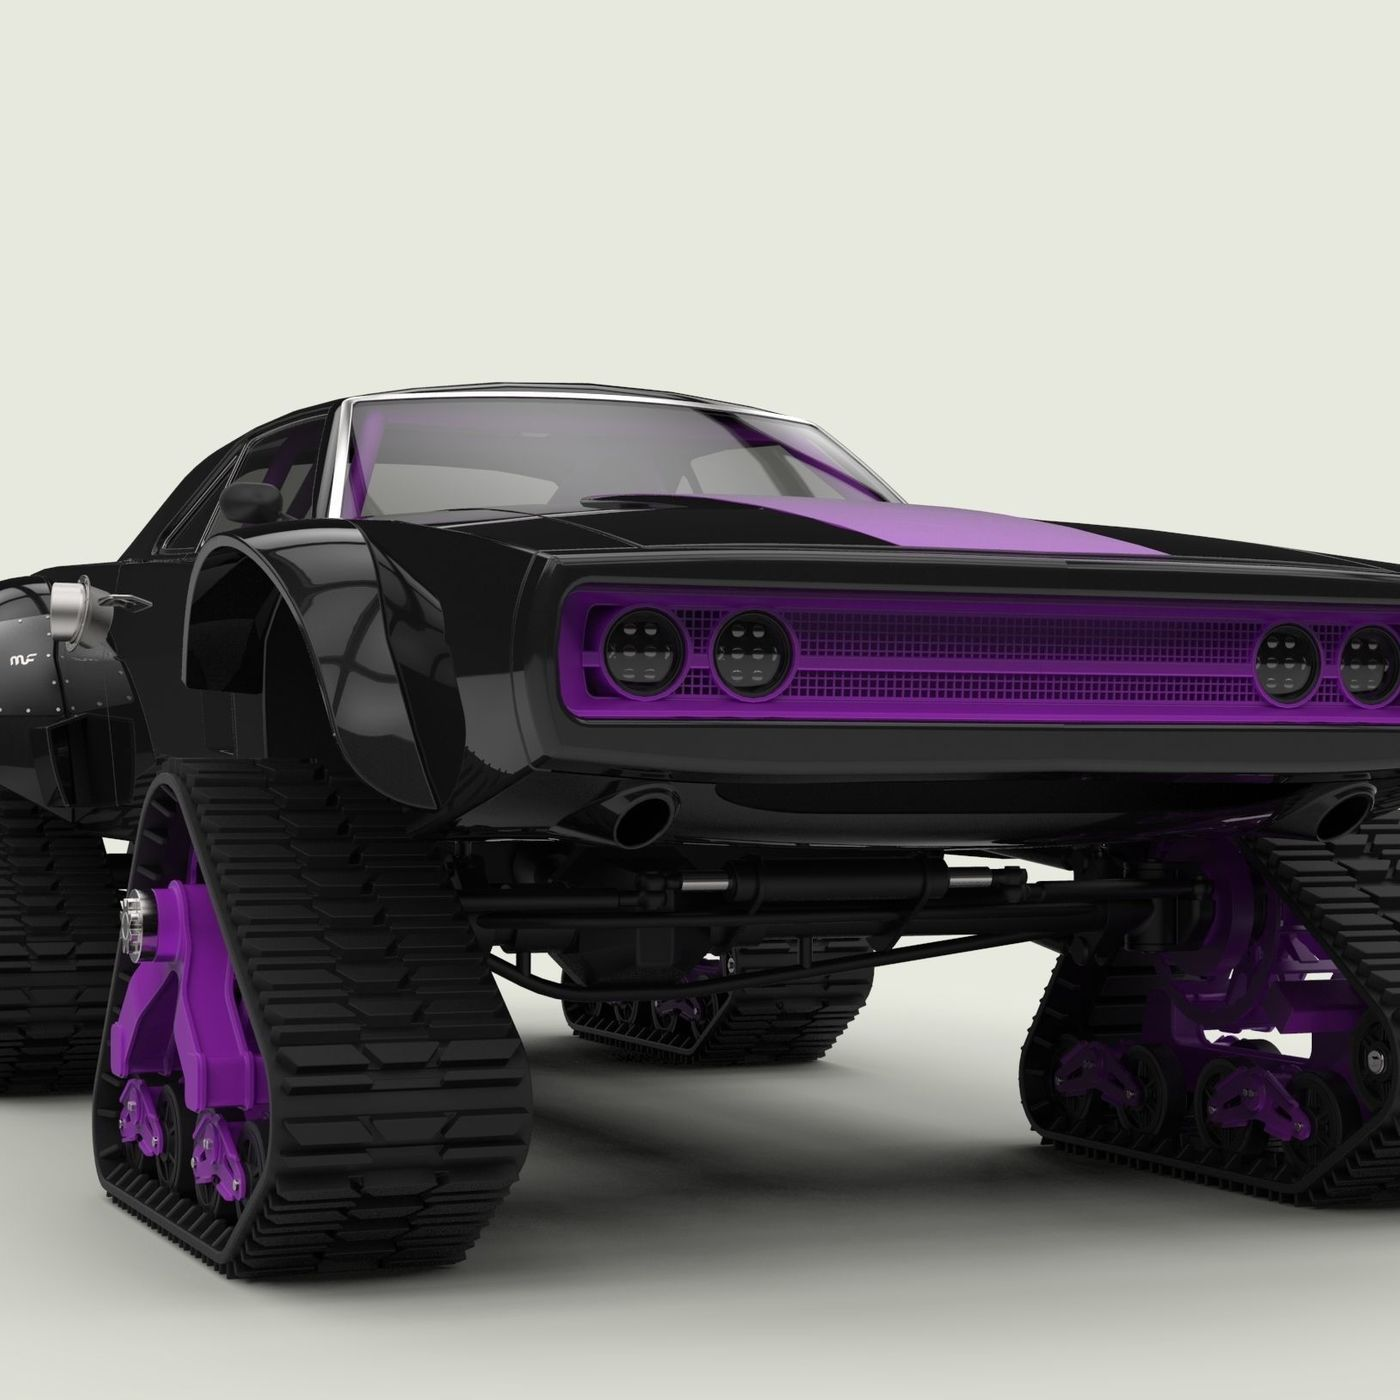 Dodge Charger with Mattracks Suspension tracks